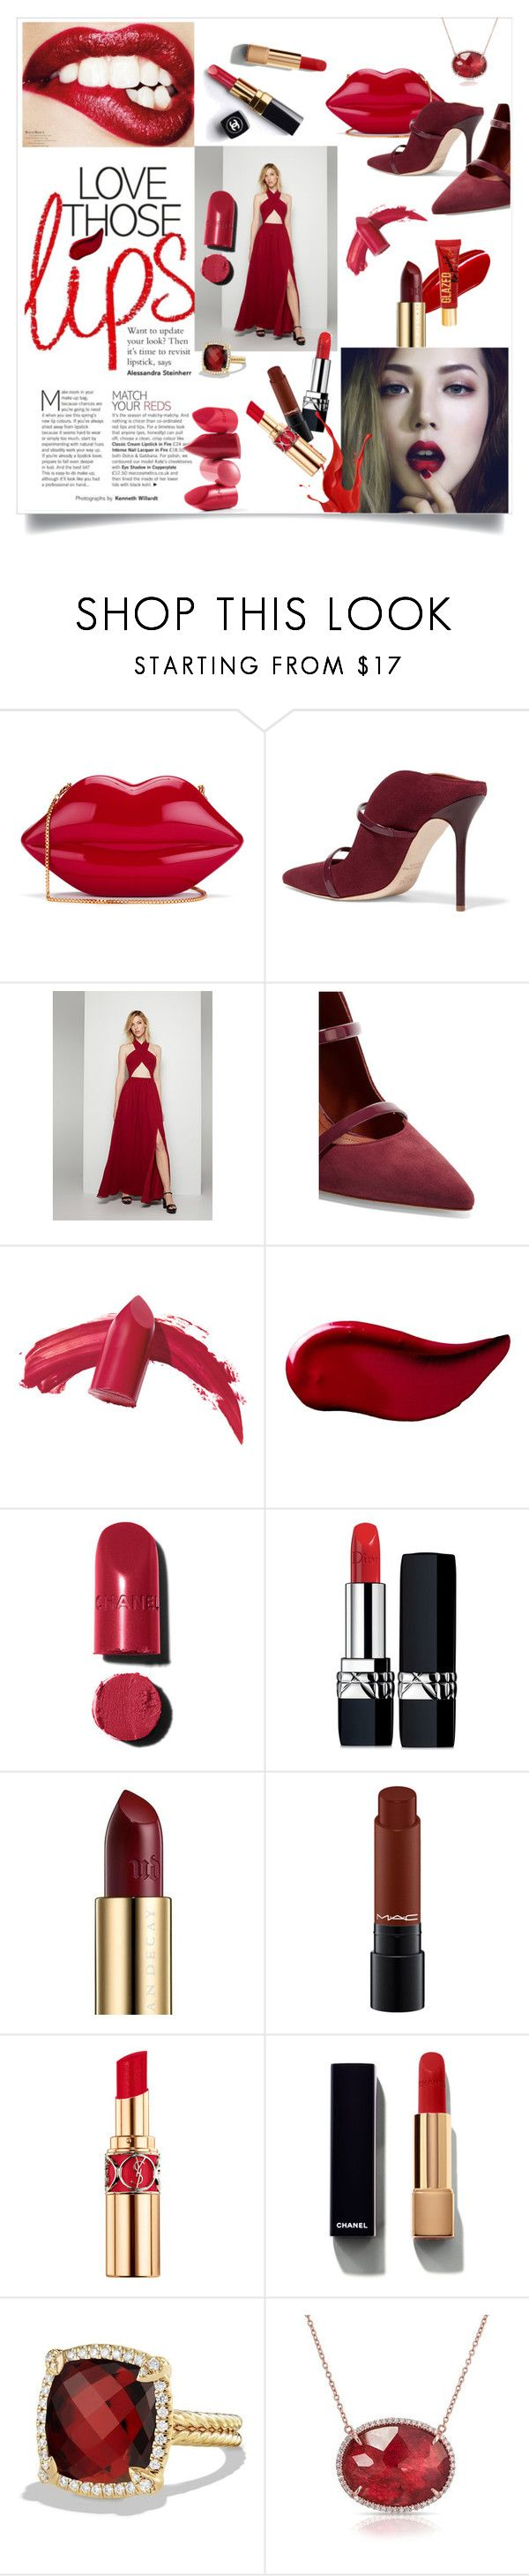 """""""Red Passion"""" by metropulse ❤ liked on Polyvore featuring Lulu Guinness, Malone Souliers, Fame & Partners, Rossetto, Chanel, Elizabeth Arden, Kat Von D, Christian Dior, Urban Decay and Yves Saint Laurent"""